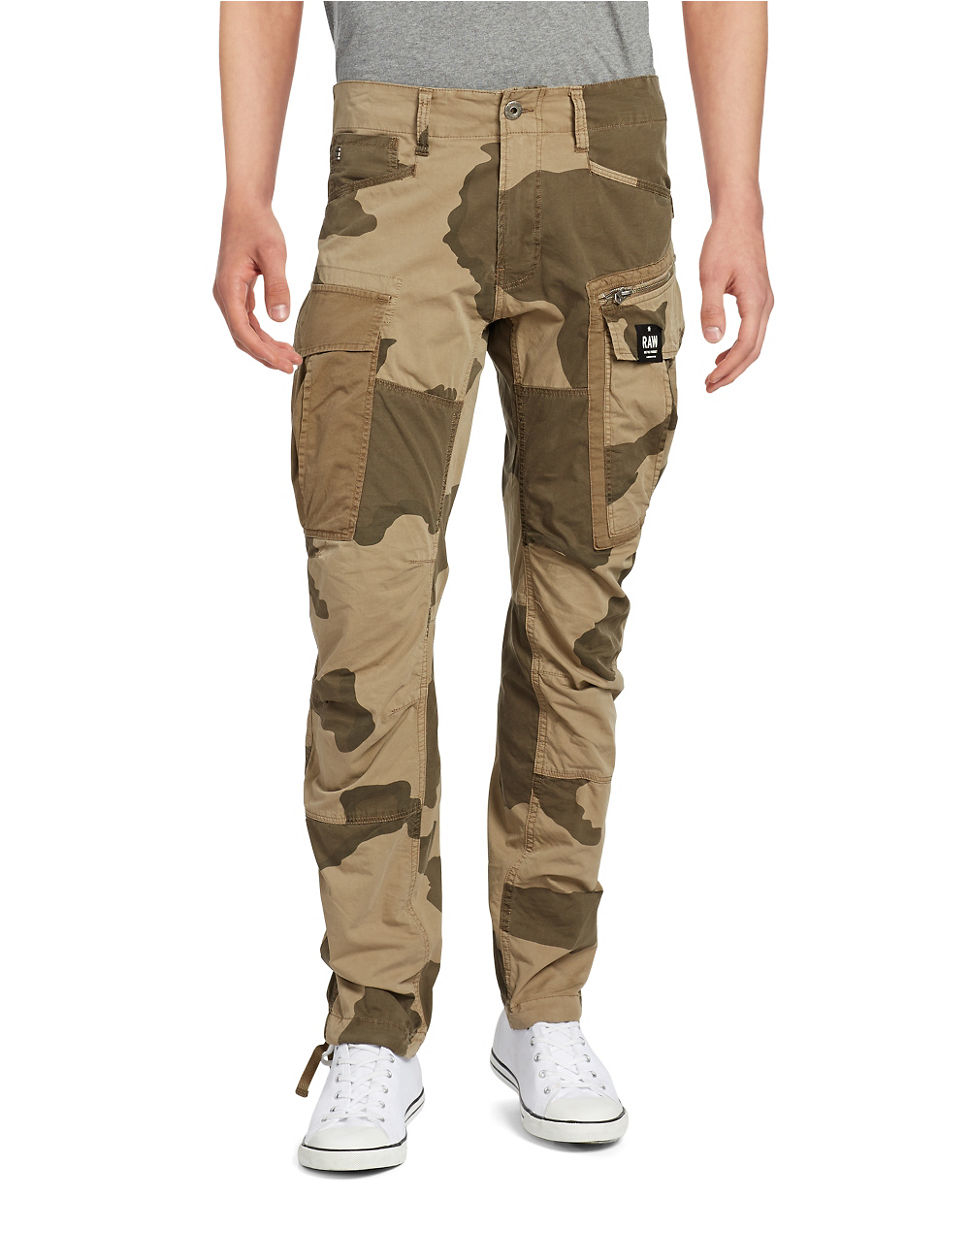 g star raw camouflage cargo pants in natural for men lyst. Black Bedroom Furniture Sets. Home Design Ideas